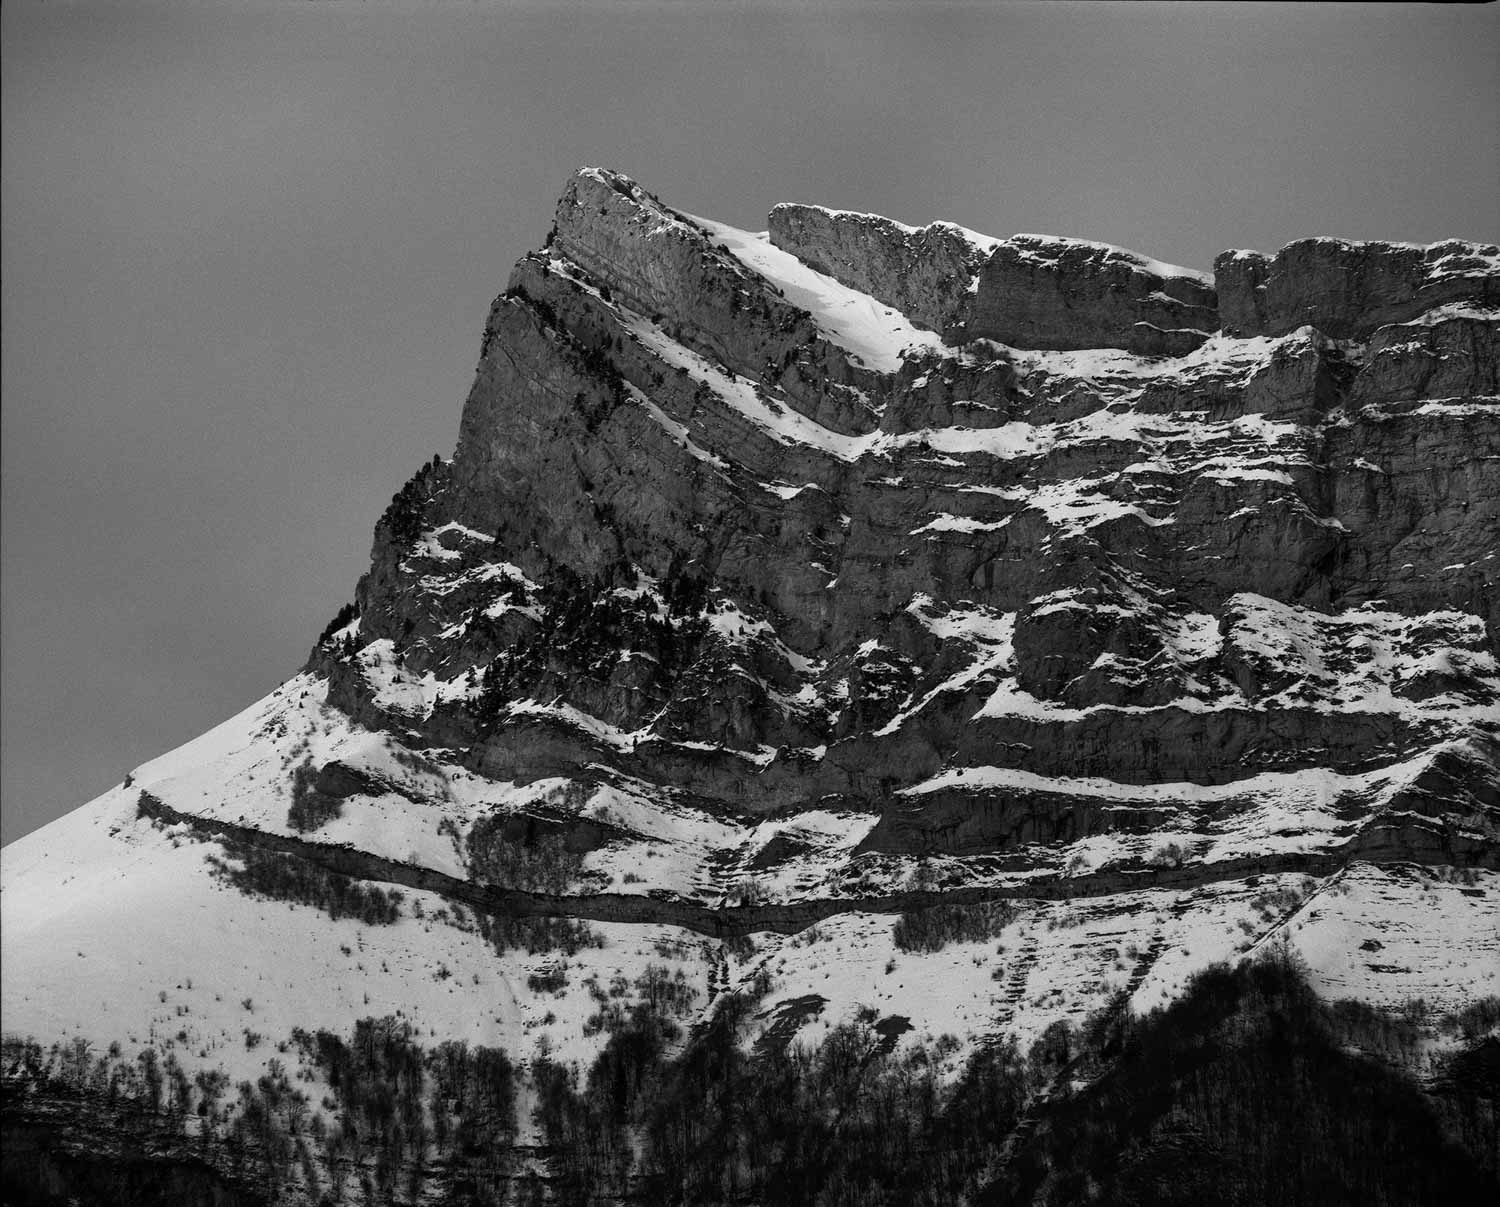 Shot with the 500 + x1.4 teleconverter. You can see vignetting on the corners. Dent de l'Arclusaz (Savoie)